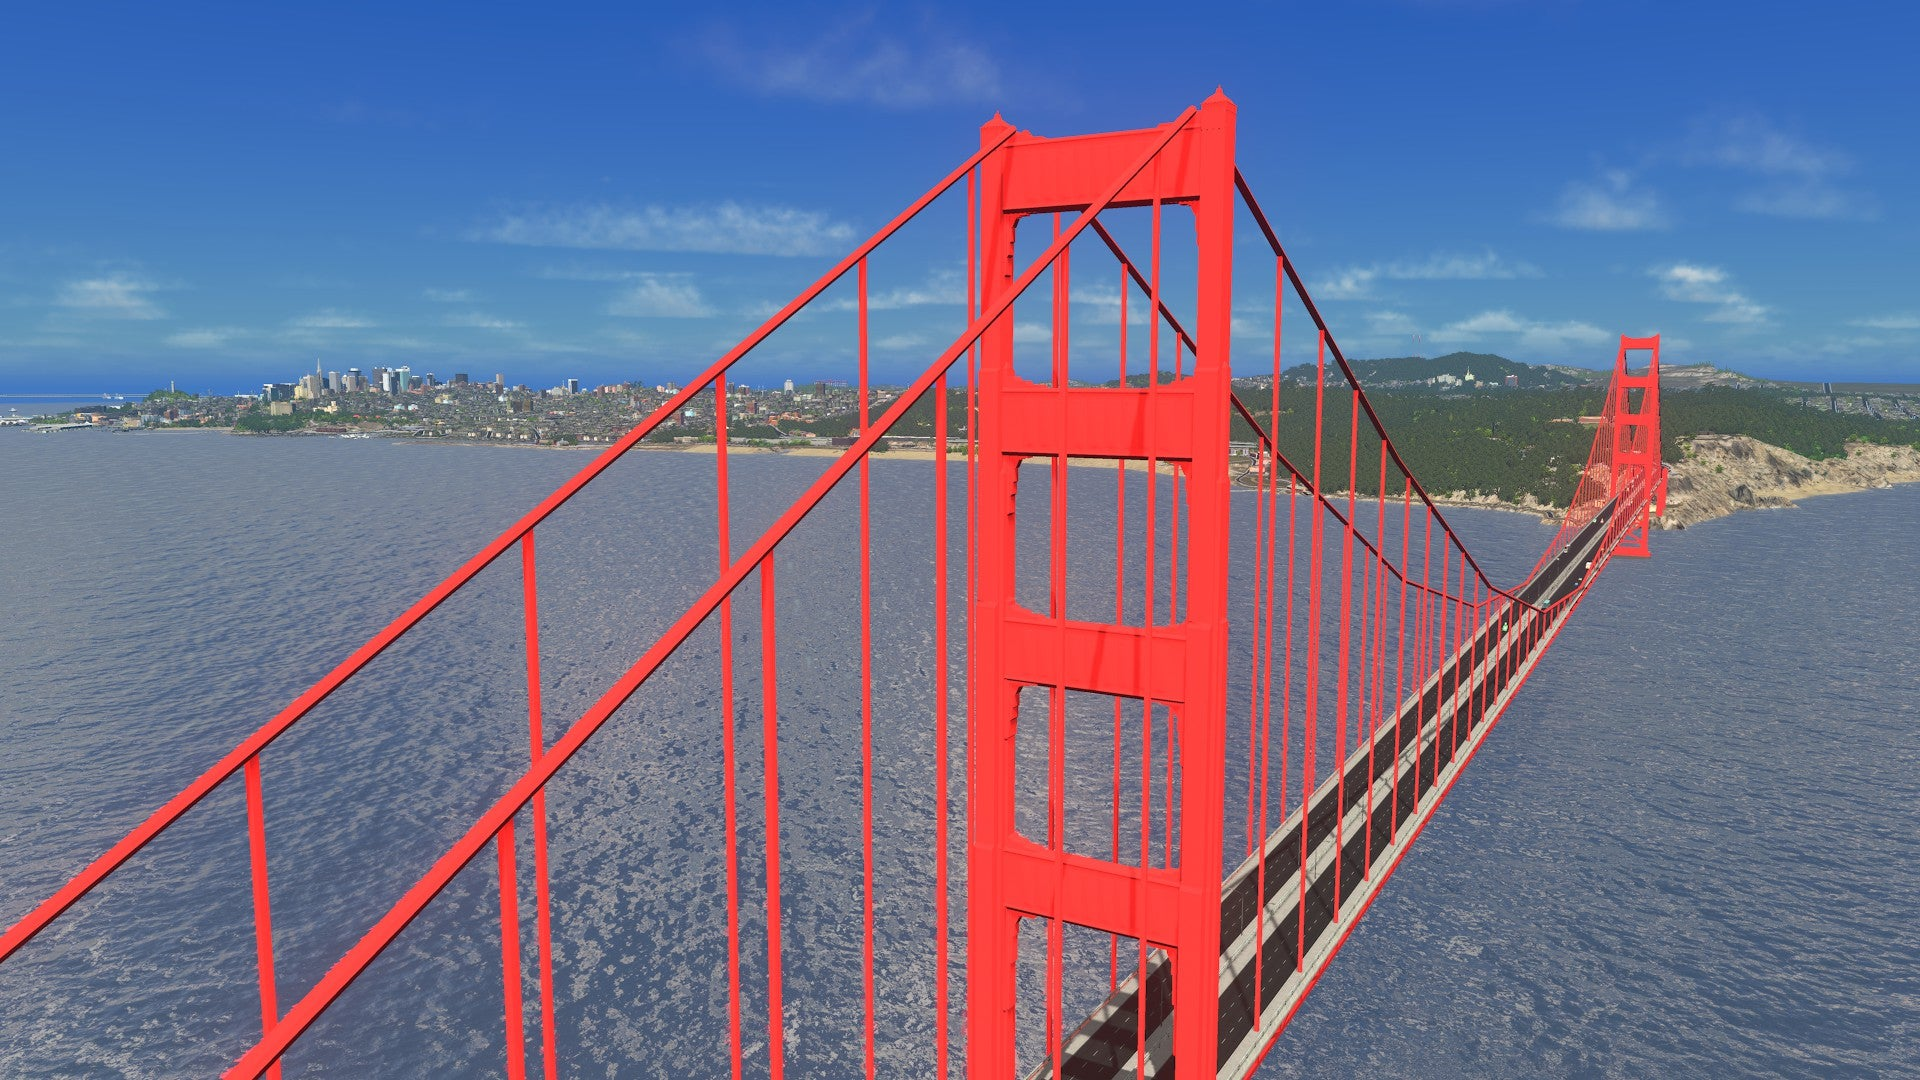 Cities Skylines Player Spends Hundreds Of Hours Building A Near-Perfect San Francisco